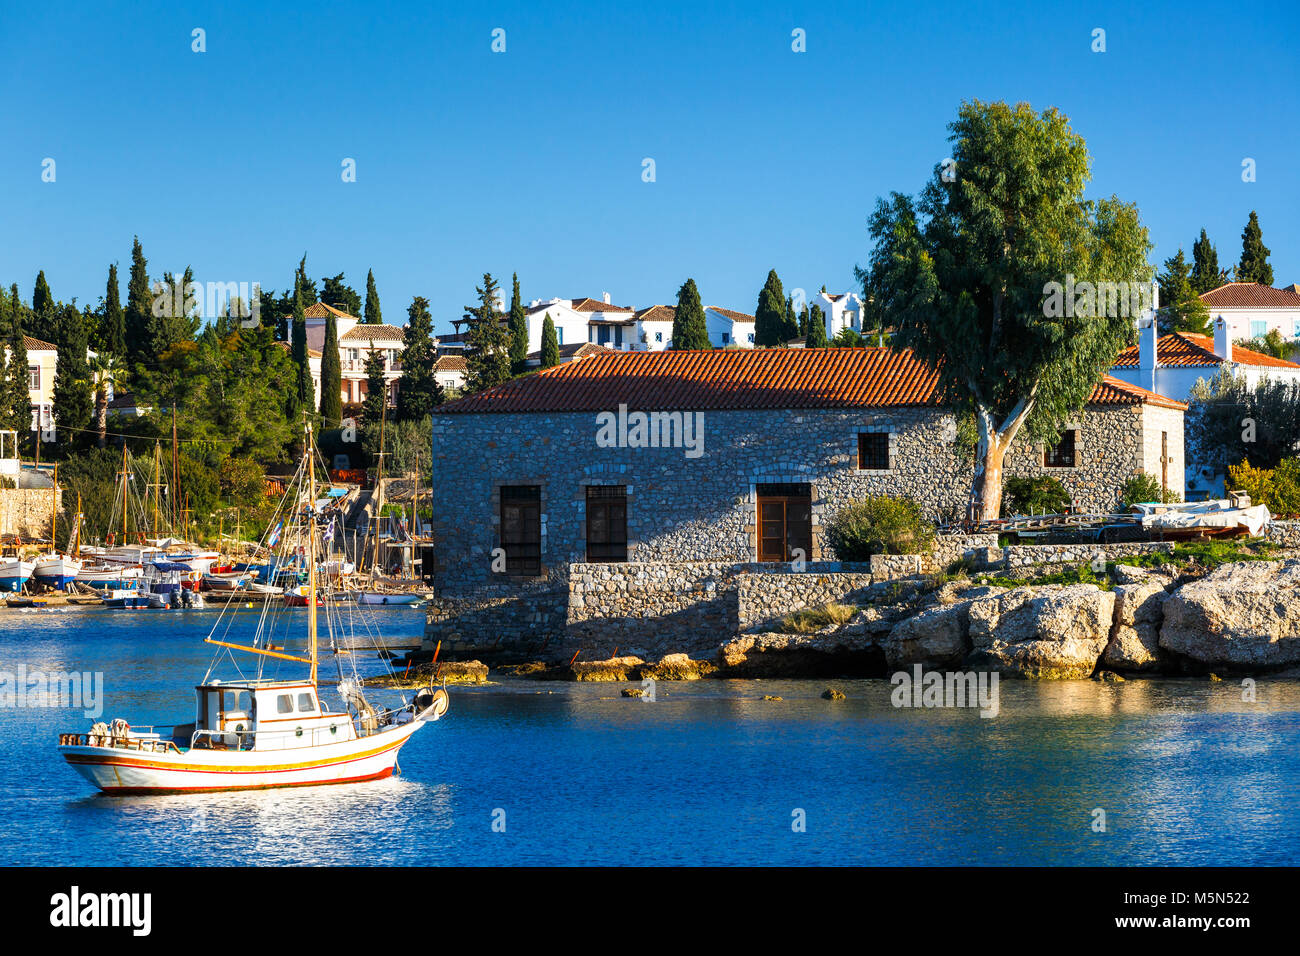 View of traditional architecture in harbour of Spetses village, Greece. - Stock Image